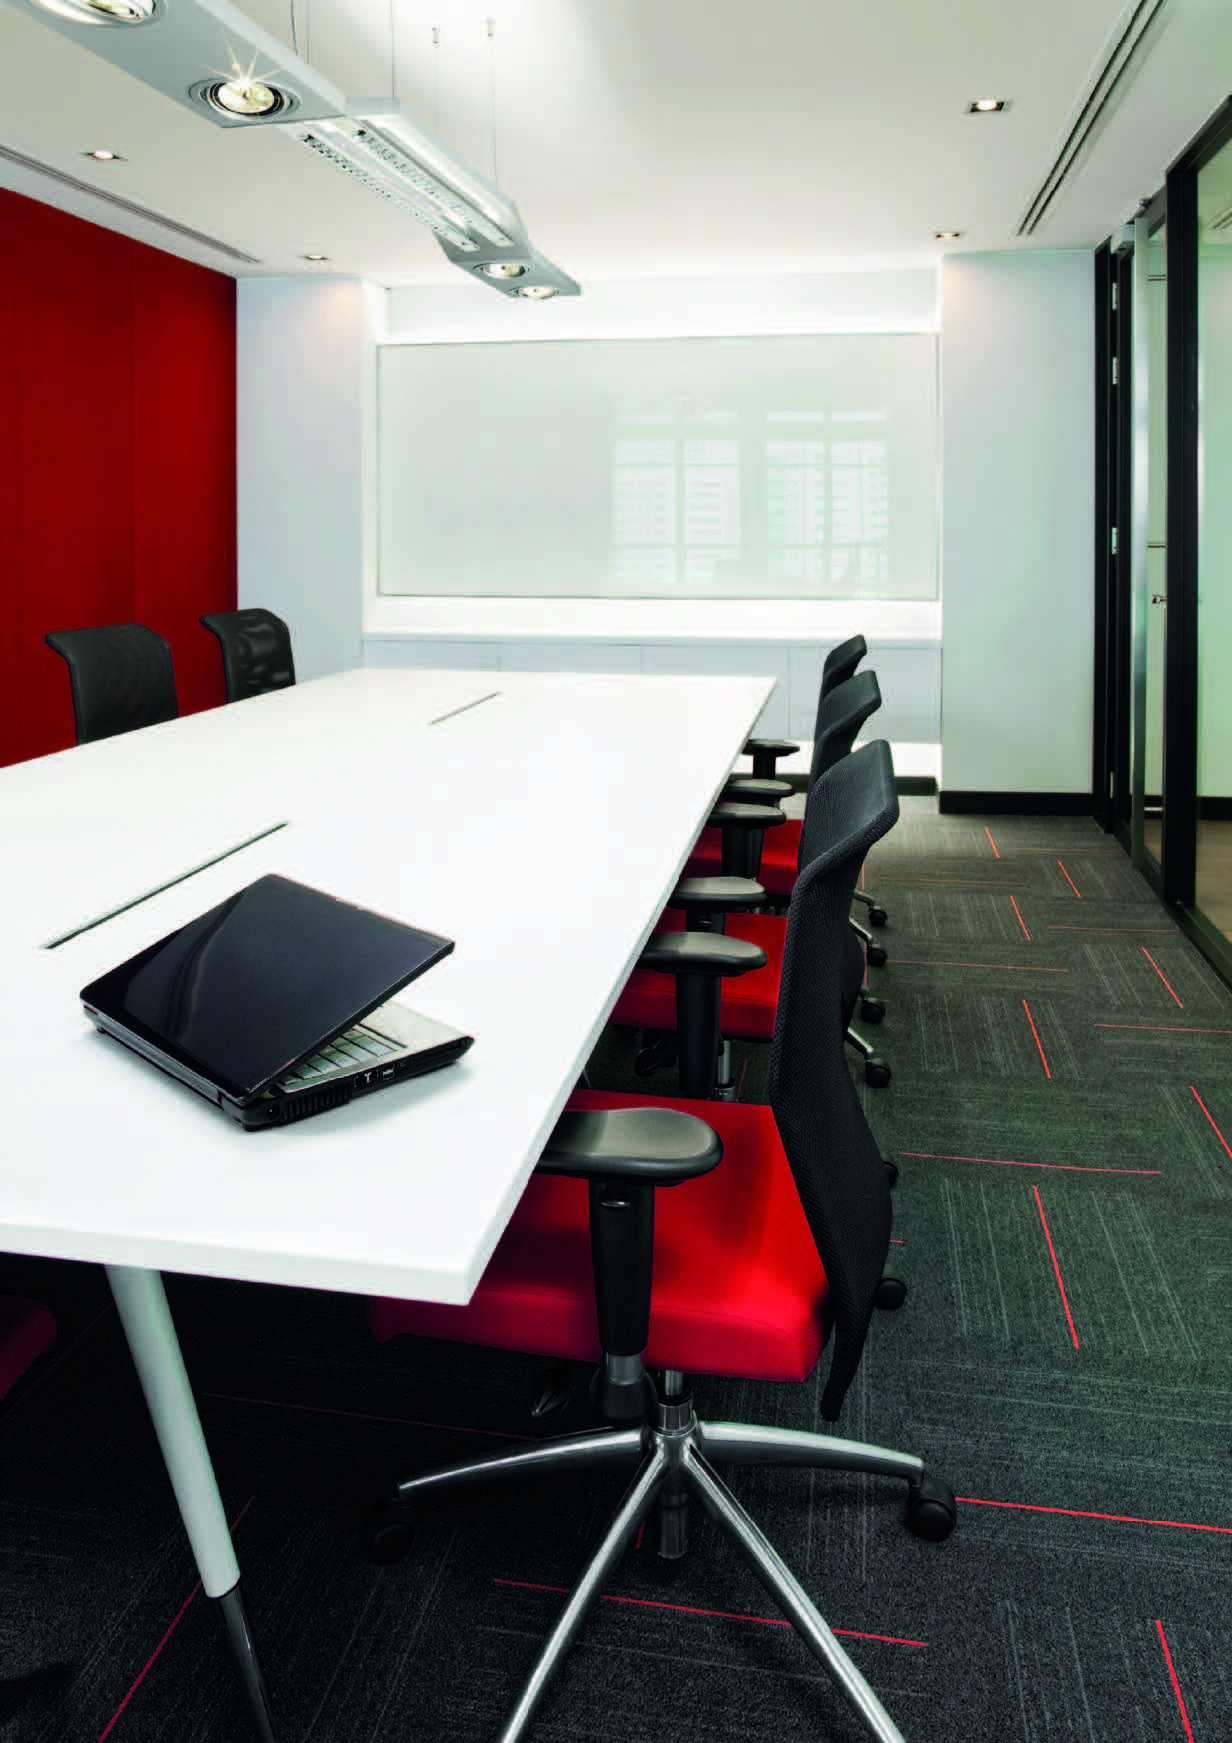 Conference Room Lighting Design: Conference Room Direct/indirect Lighting With Halo